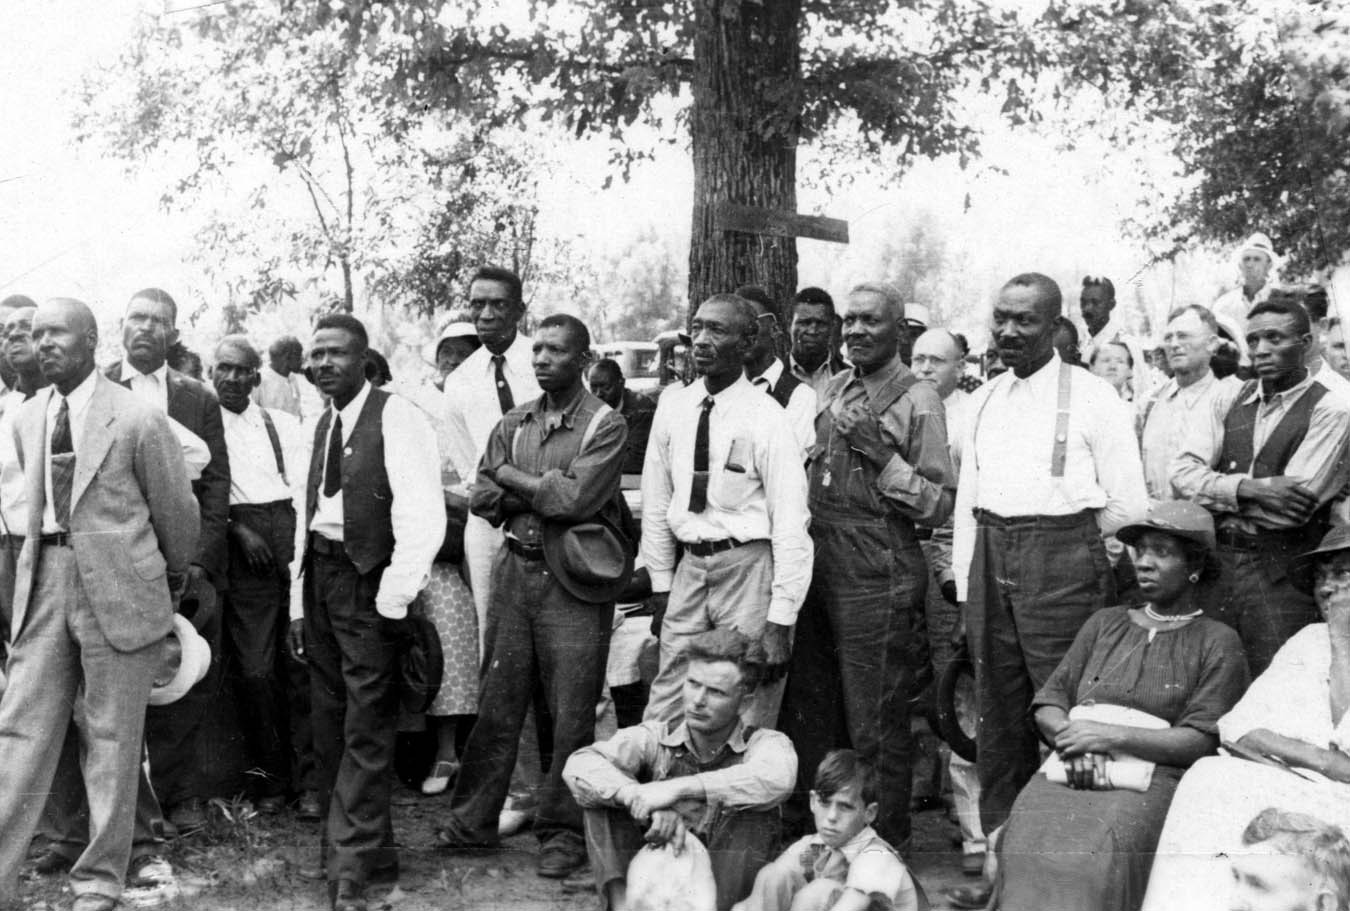 racism in the 1930s